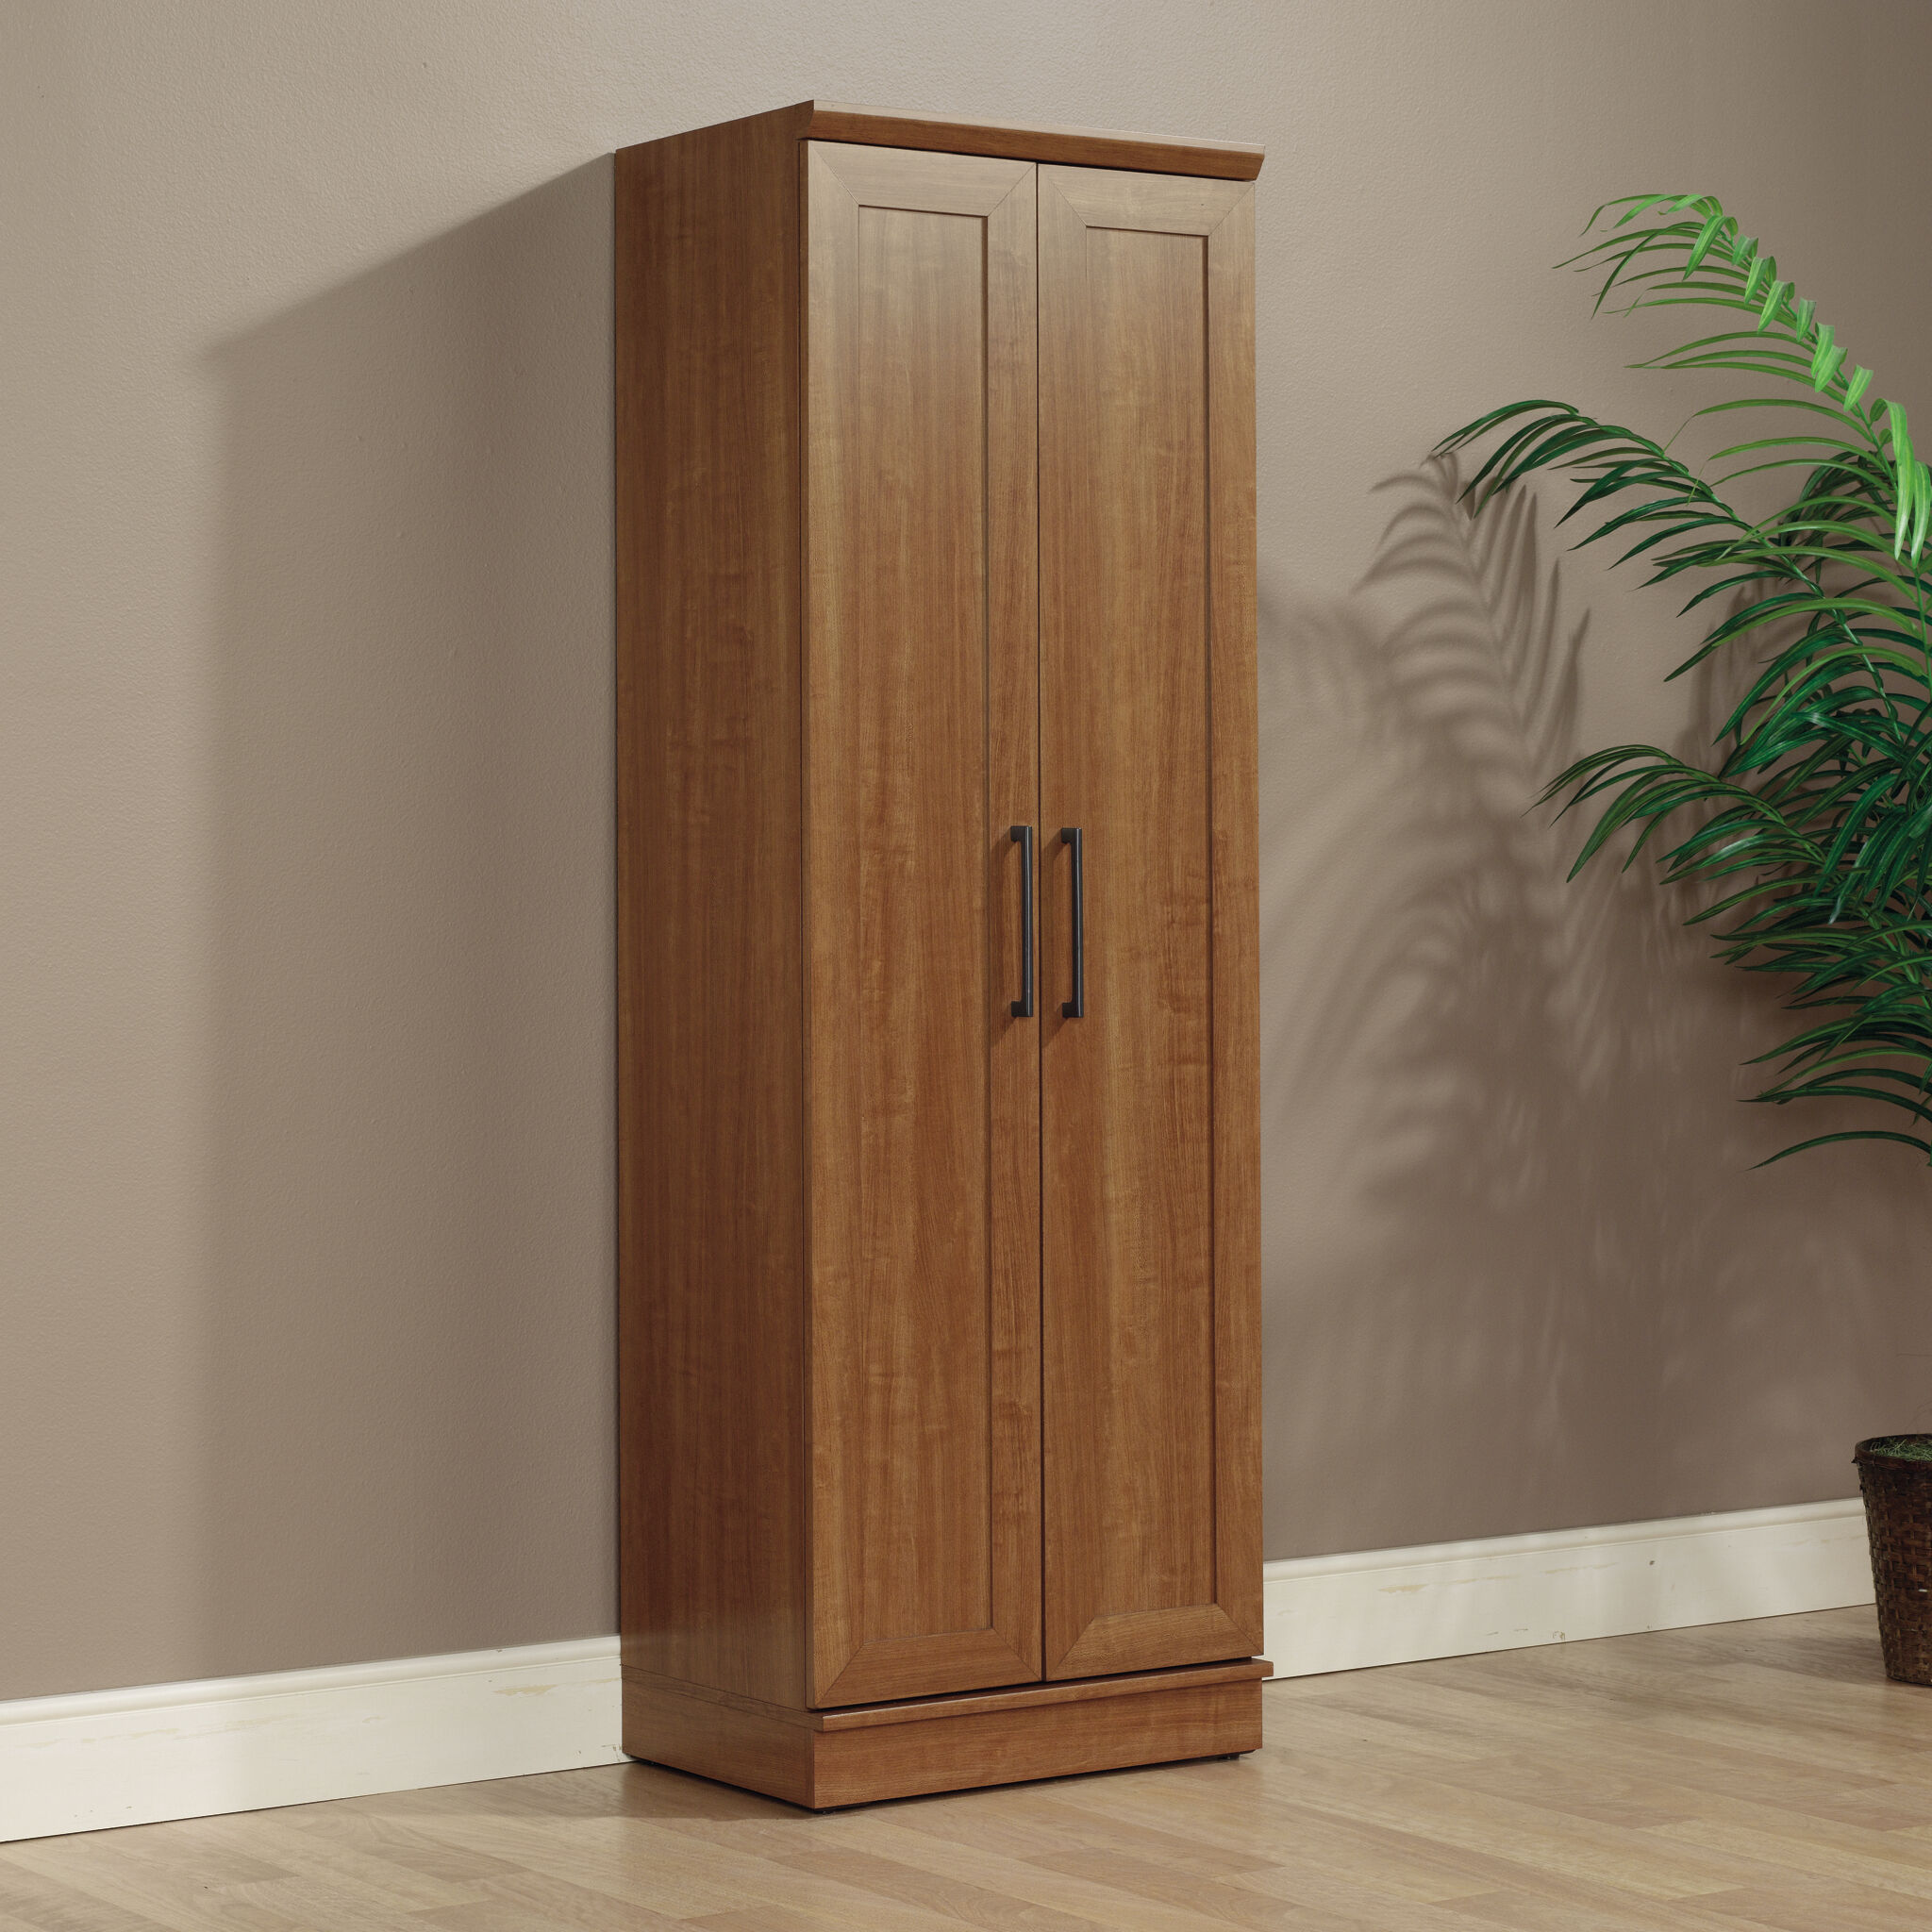 TwoDoor Contemporary Storage Cabinet in Sienna Oak